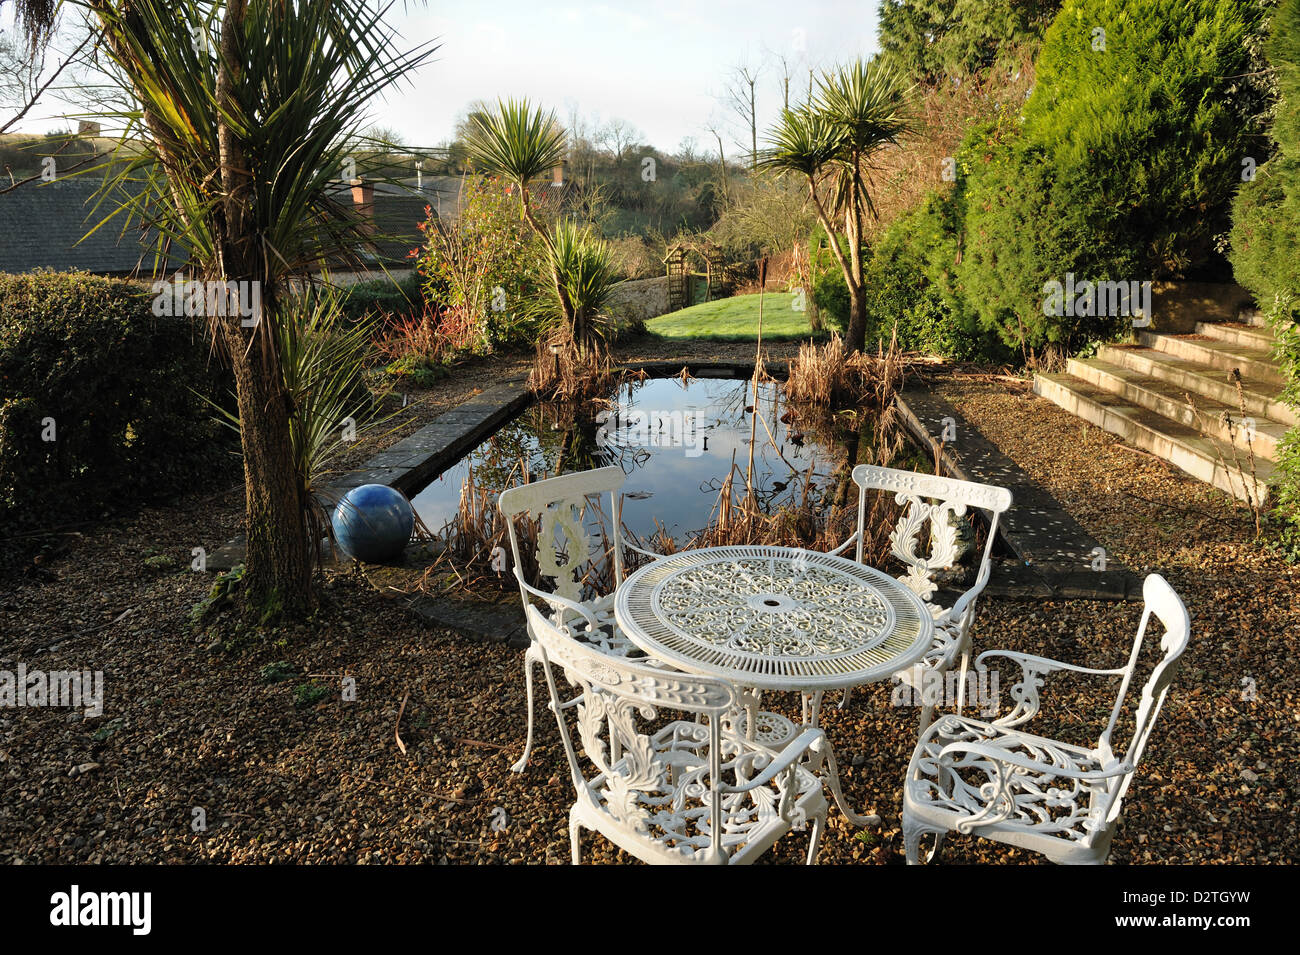 Formal garden pond with dead rushes and irises, garden table and chairs and Torbay palm trees, Cordyline australis, - Stock Image